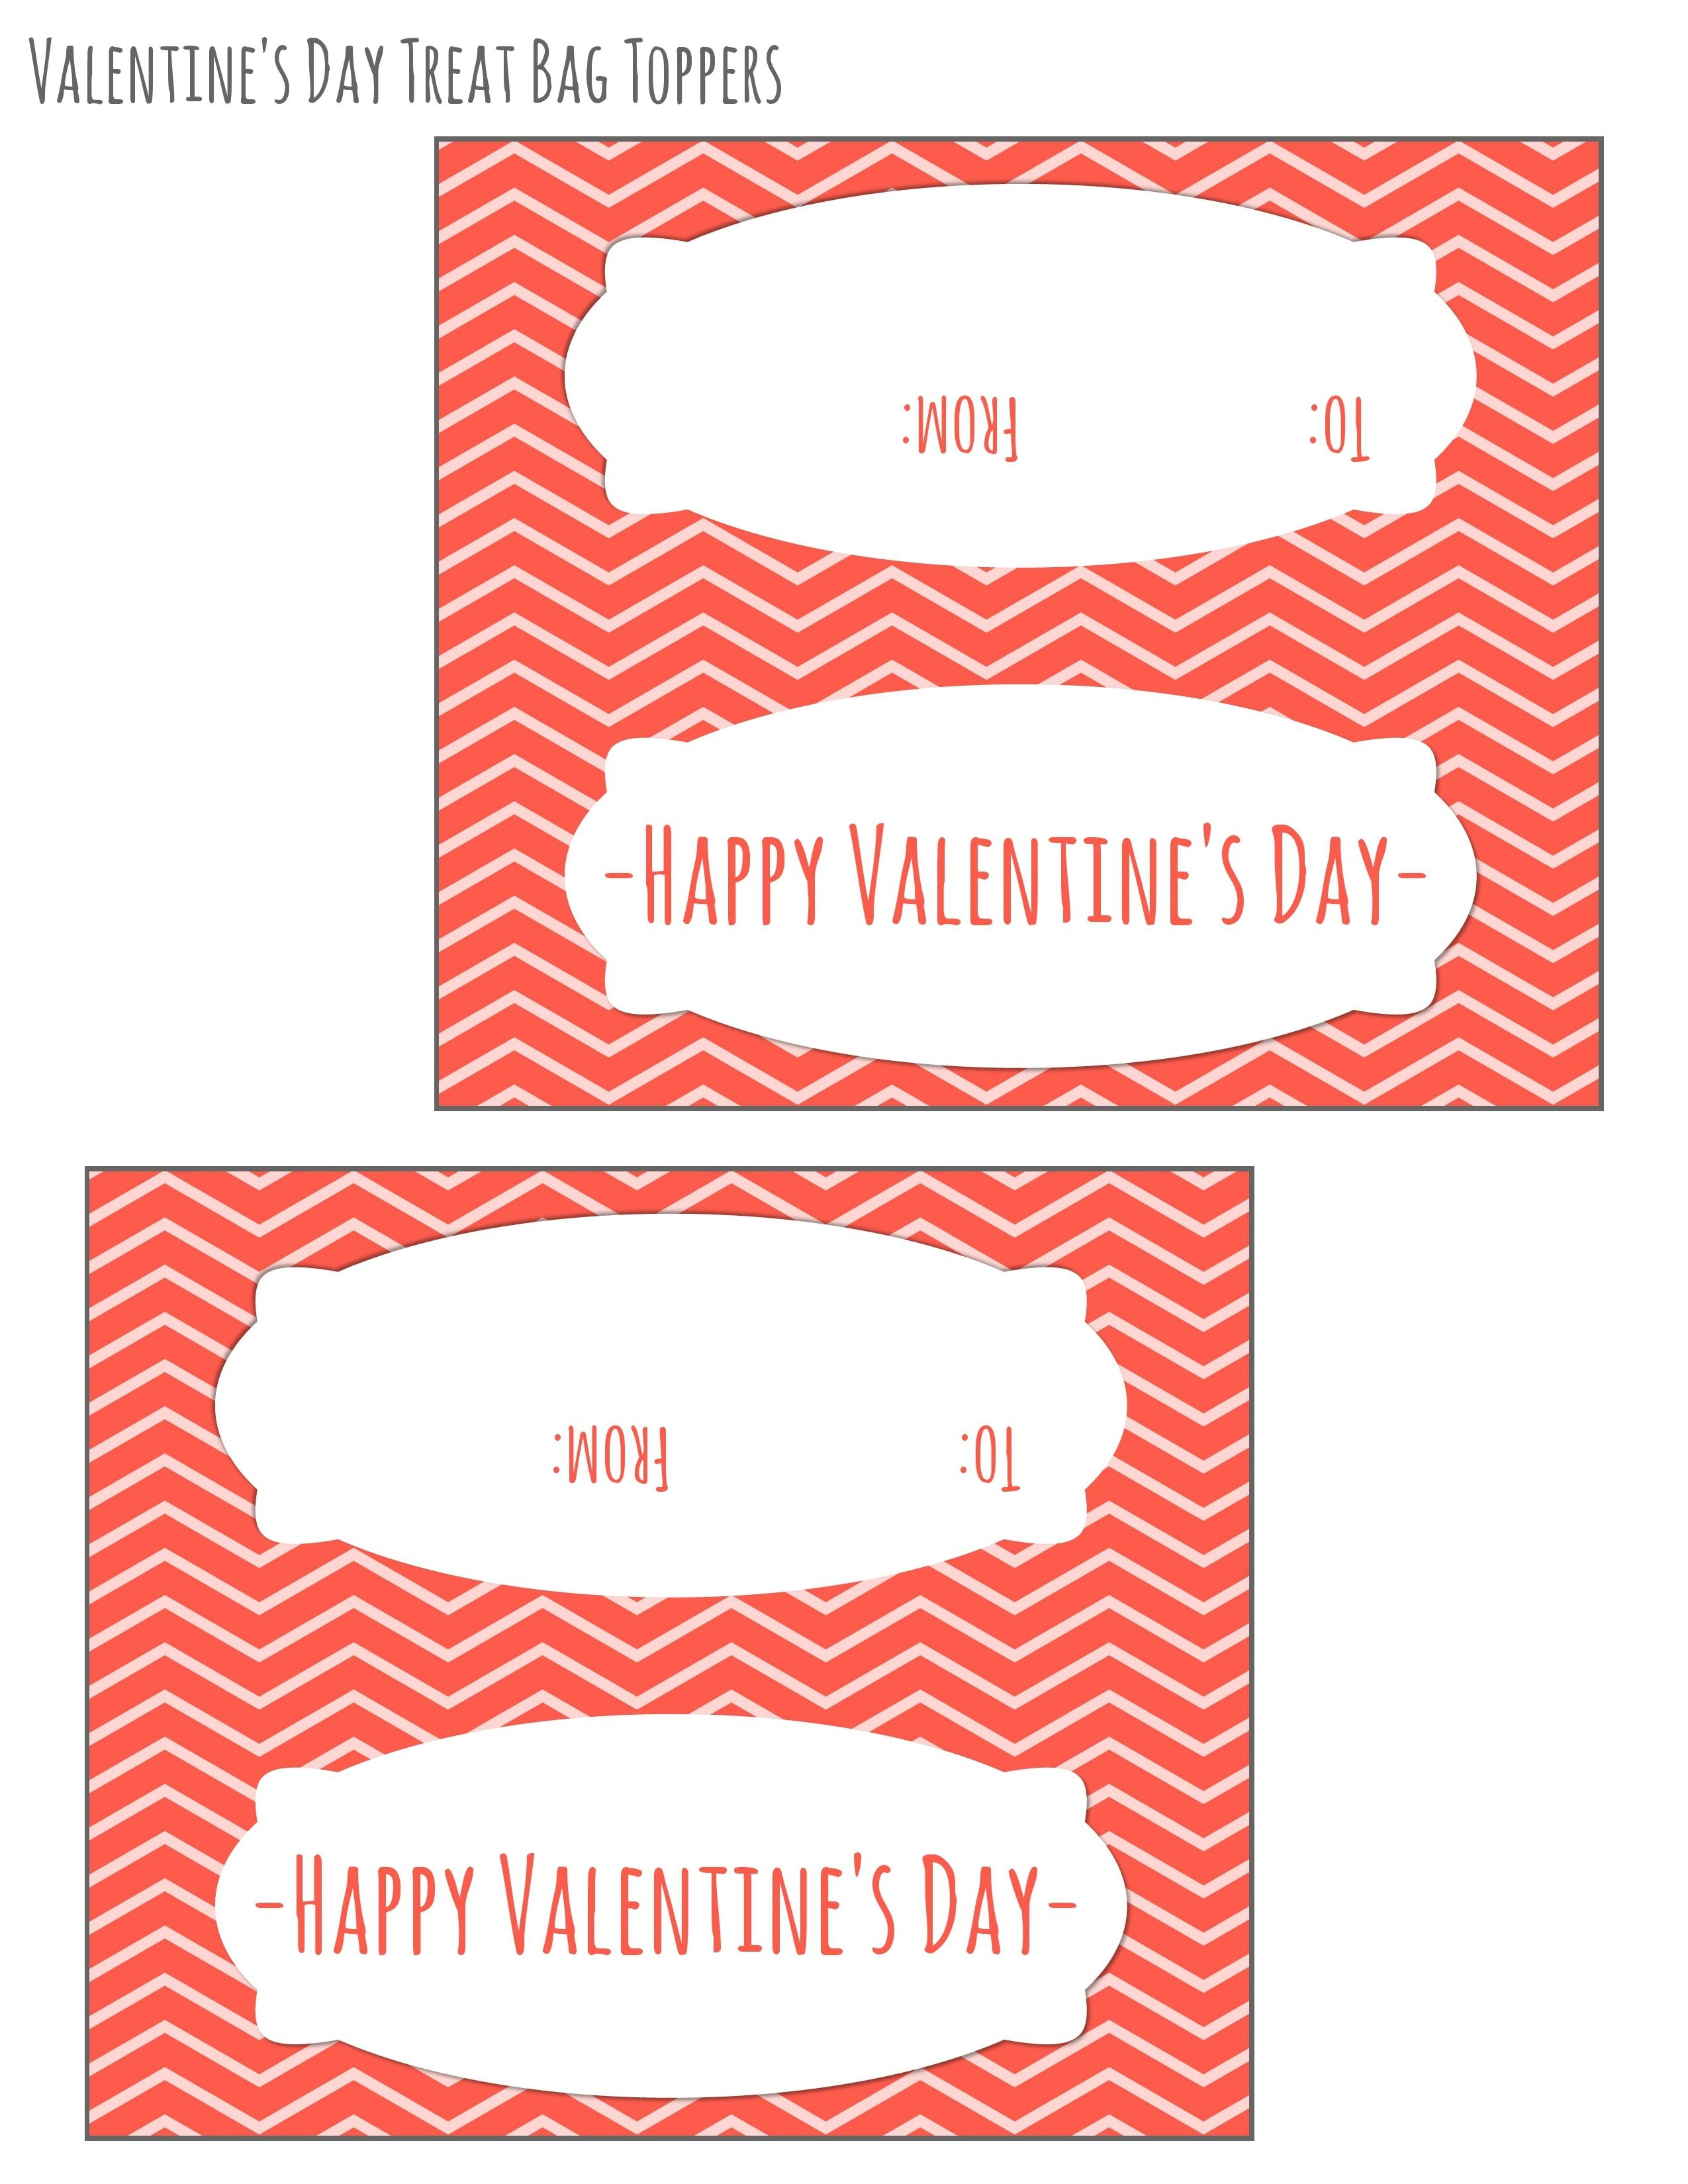 Free Printable Valentines Day Bag Toppers   February   Valentines - Free Printable Valentine's Day Stencils